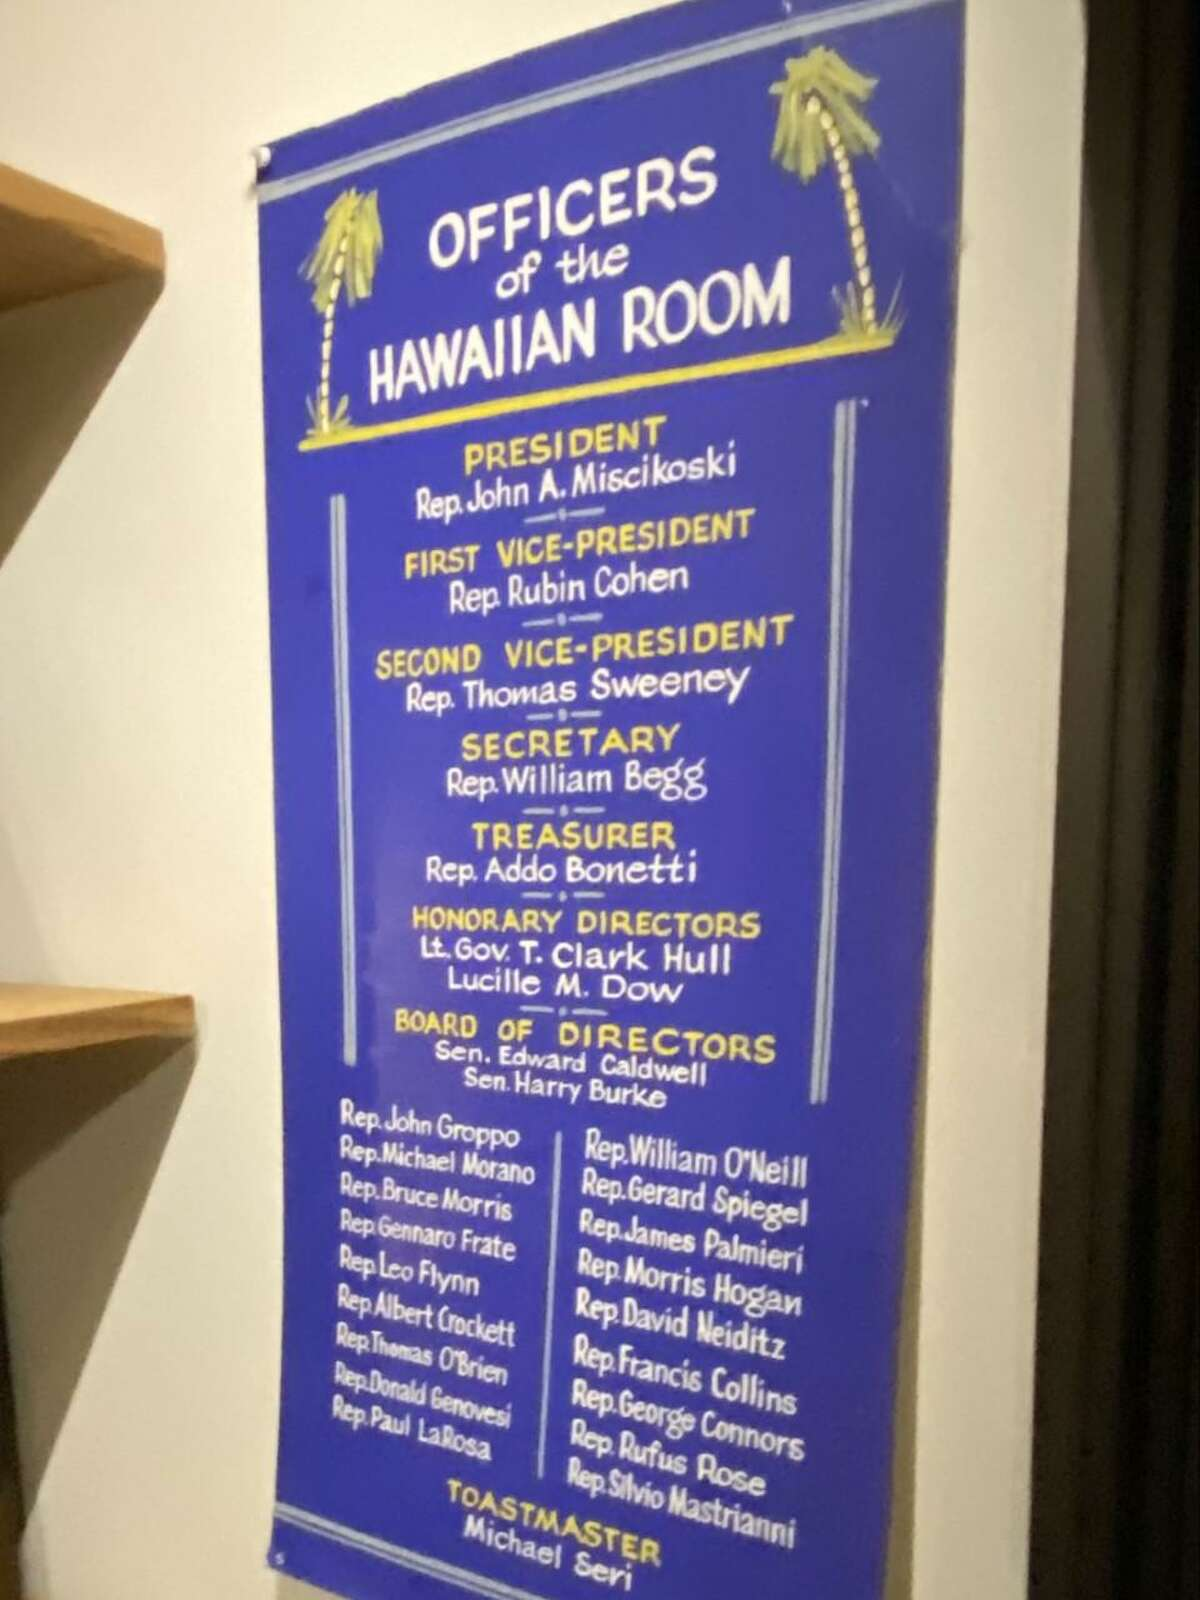 Among the memorabilia in the basement of the State Capitol is a plaque from the early 1970s containing the names of an informal drinking club called the Hawaiian Room, which for decades occupied space on the fourth floor. Names include then-Lt. Gov. T. Clark Hull of Danbury and William O'Neill, a state representative who went on to become governor, succeeding Ella Grasso.